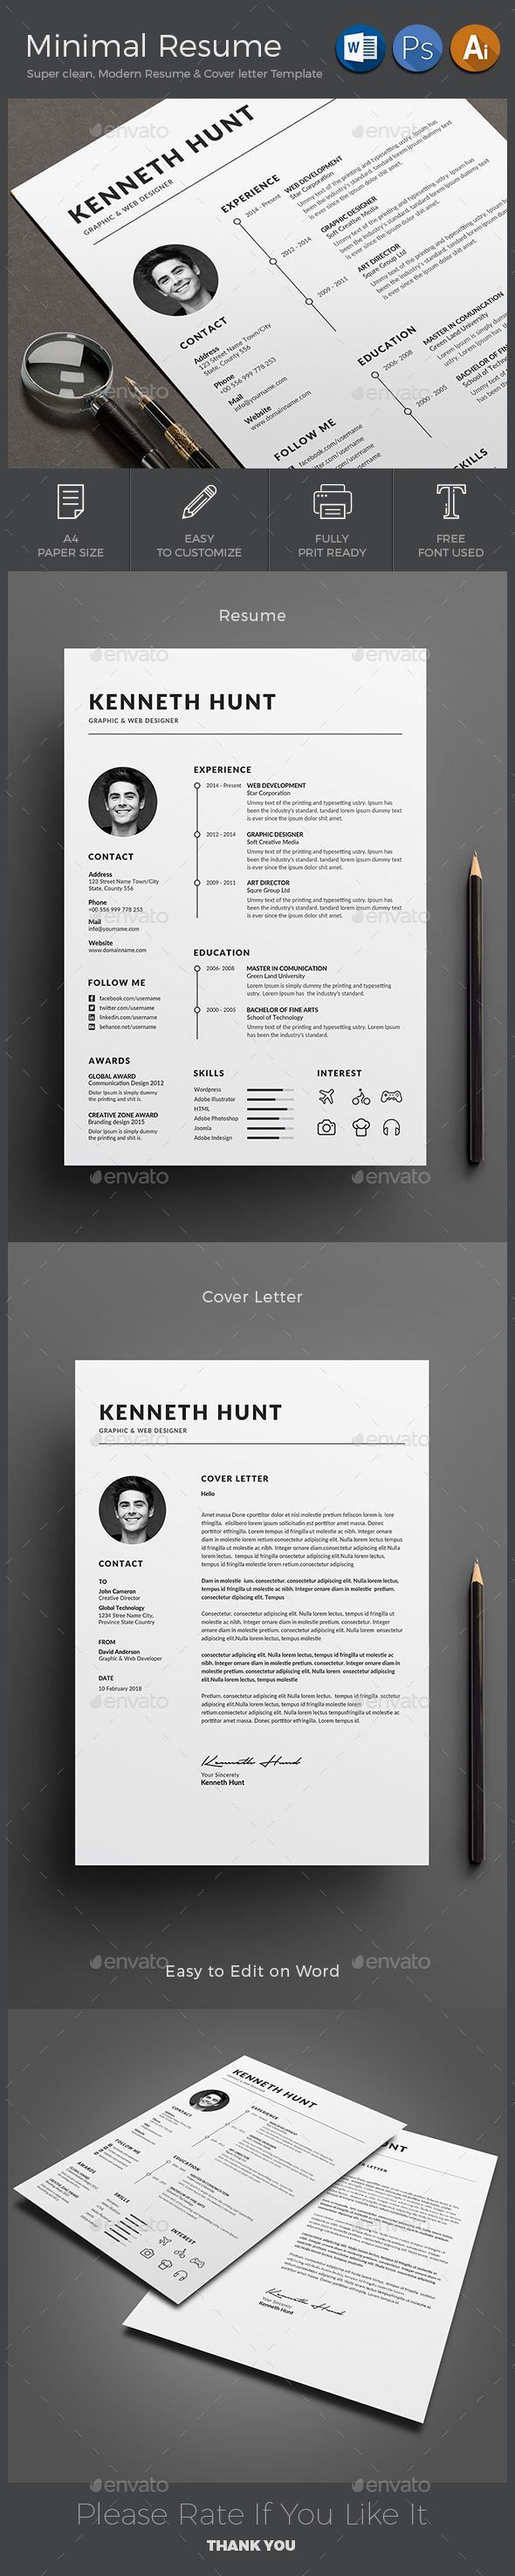 Charming 1 Page Resume Format Download Thick 1099 Contract Template Regular 16x20 Collage Template 18 Year Old Resumes Youthful 2 Page Resume Format Blue2 Page Resume Format Example 25  Best Ideas About Professional Resume Format On Pinterest | Cv ..